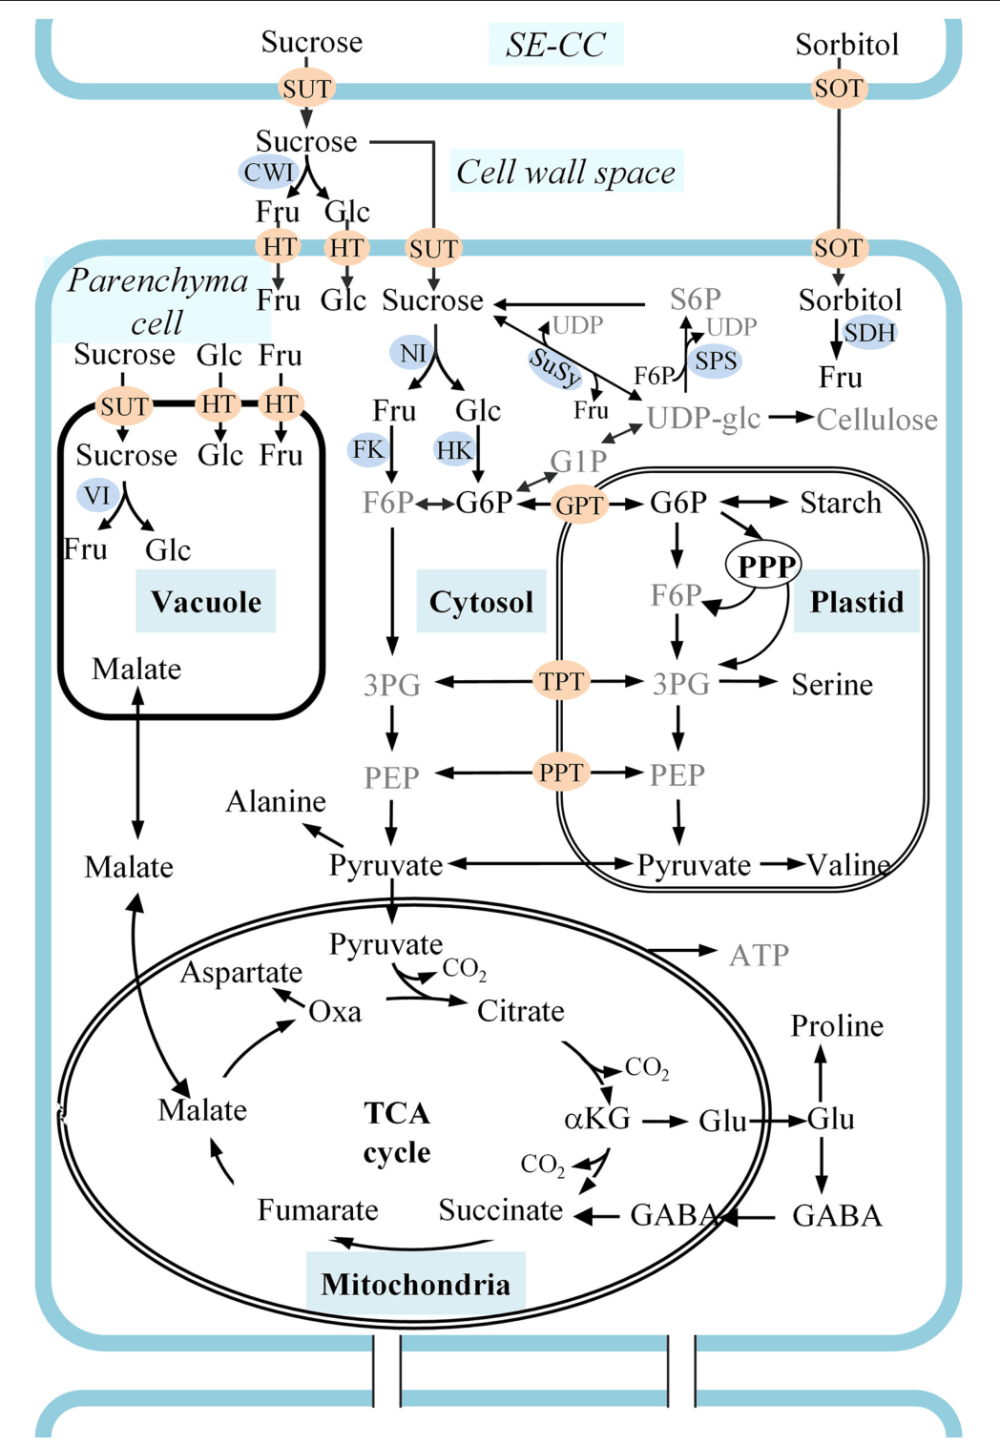 medium resolution of figure 1 a schematic representation of carbon metabolism in developing apple fruit sorbitol and